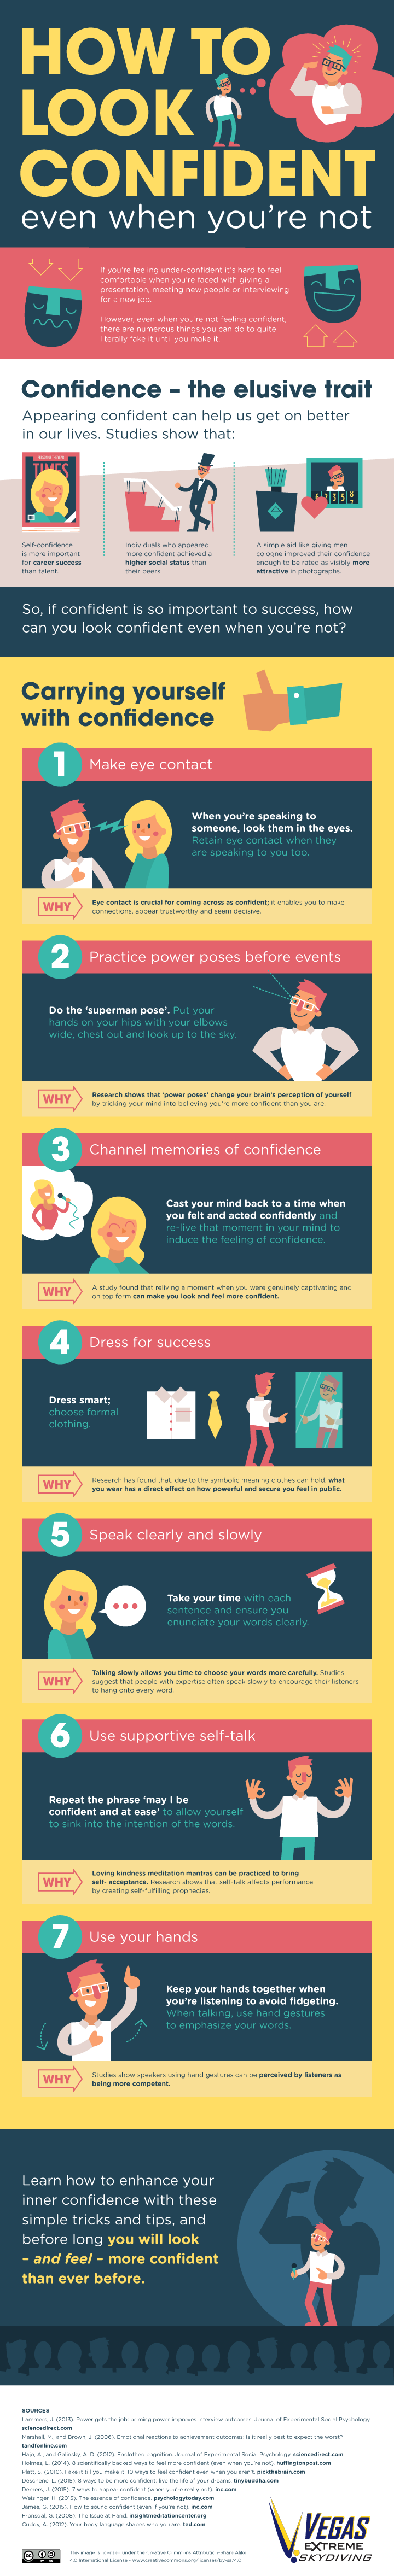 How to Look Confident!